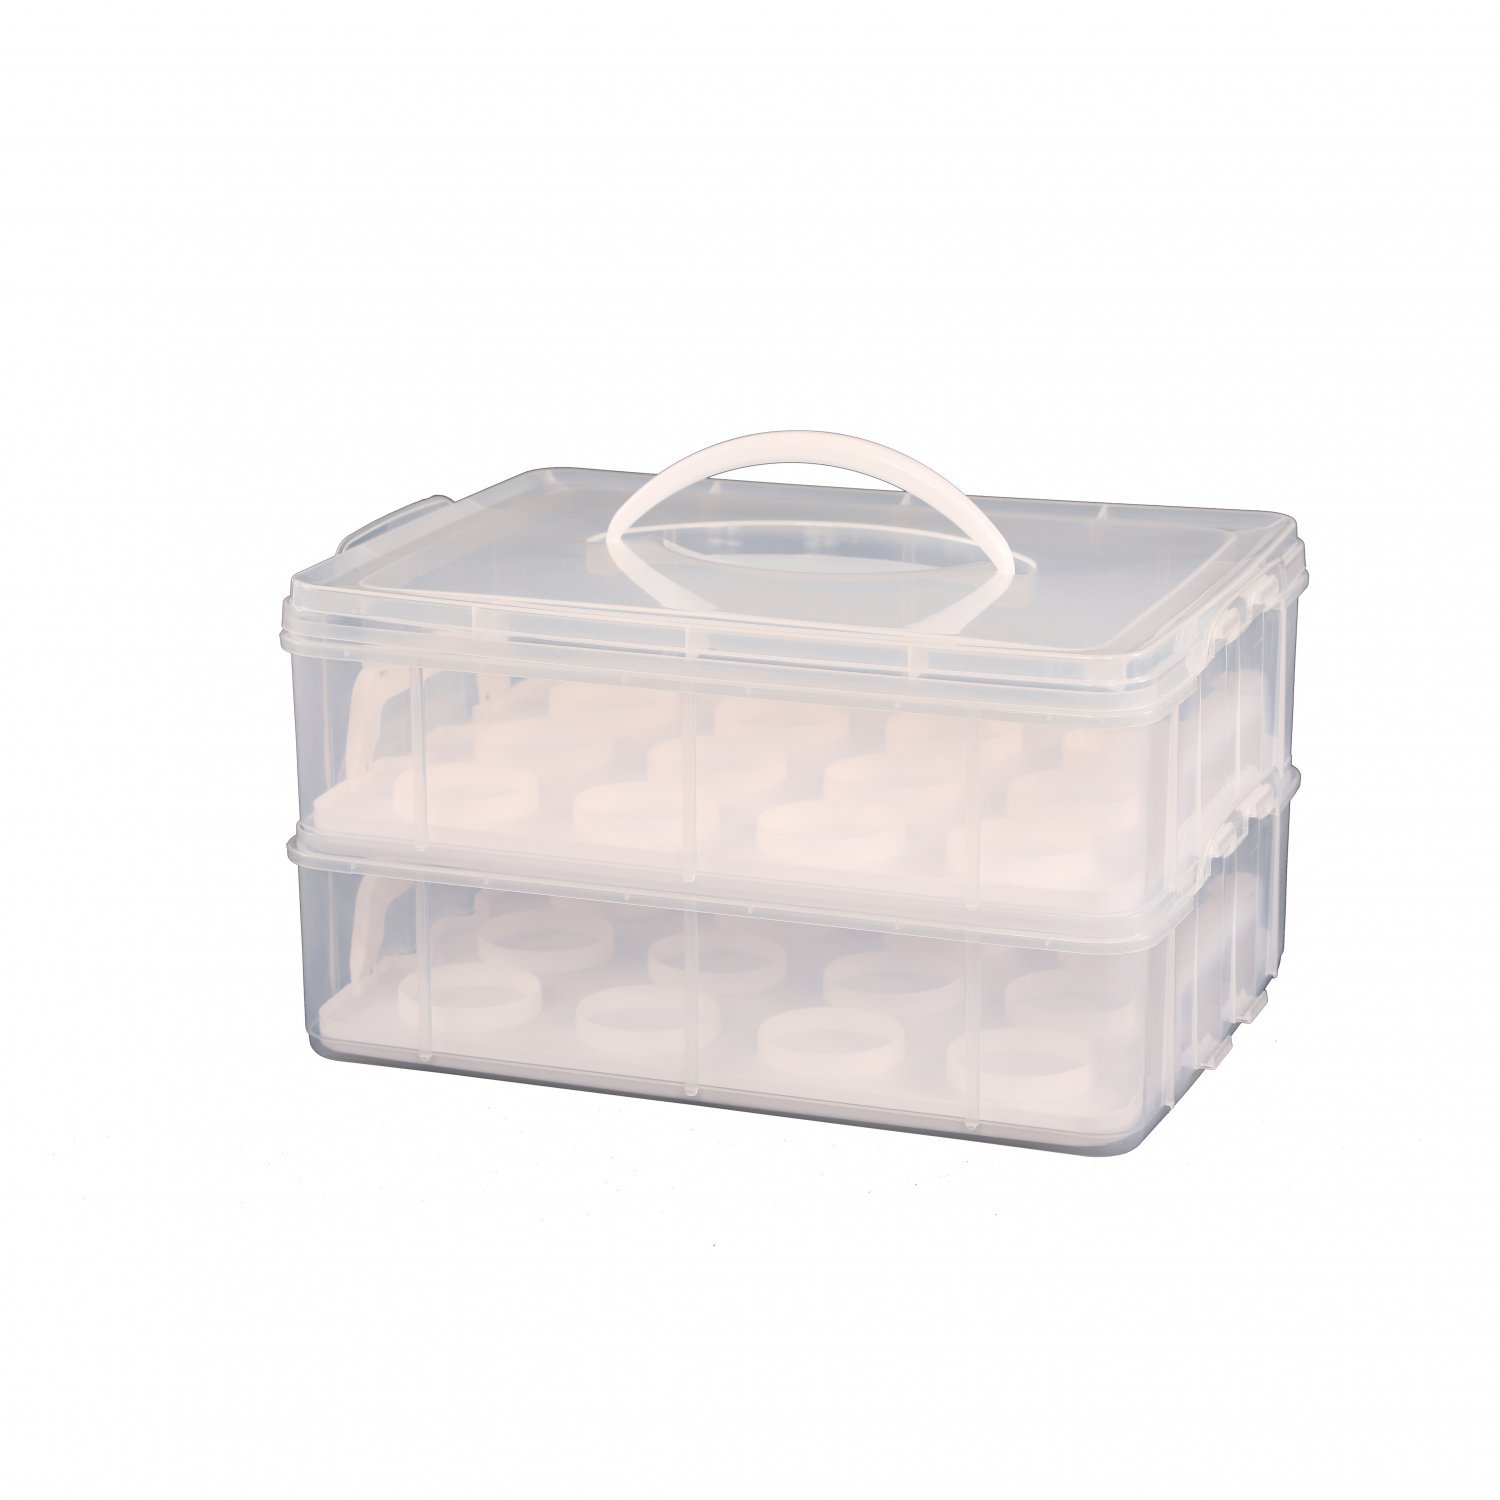 2 Tier Cupcake Cake Holder Portable Storage Carrier